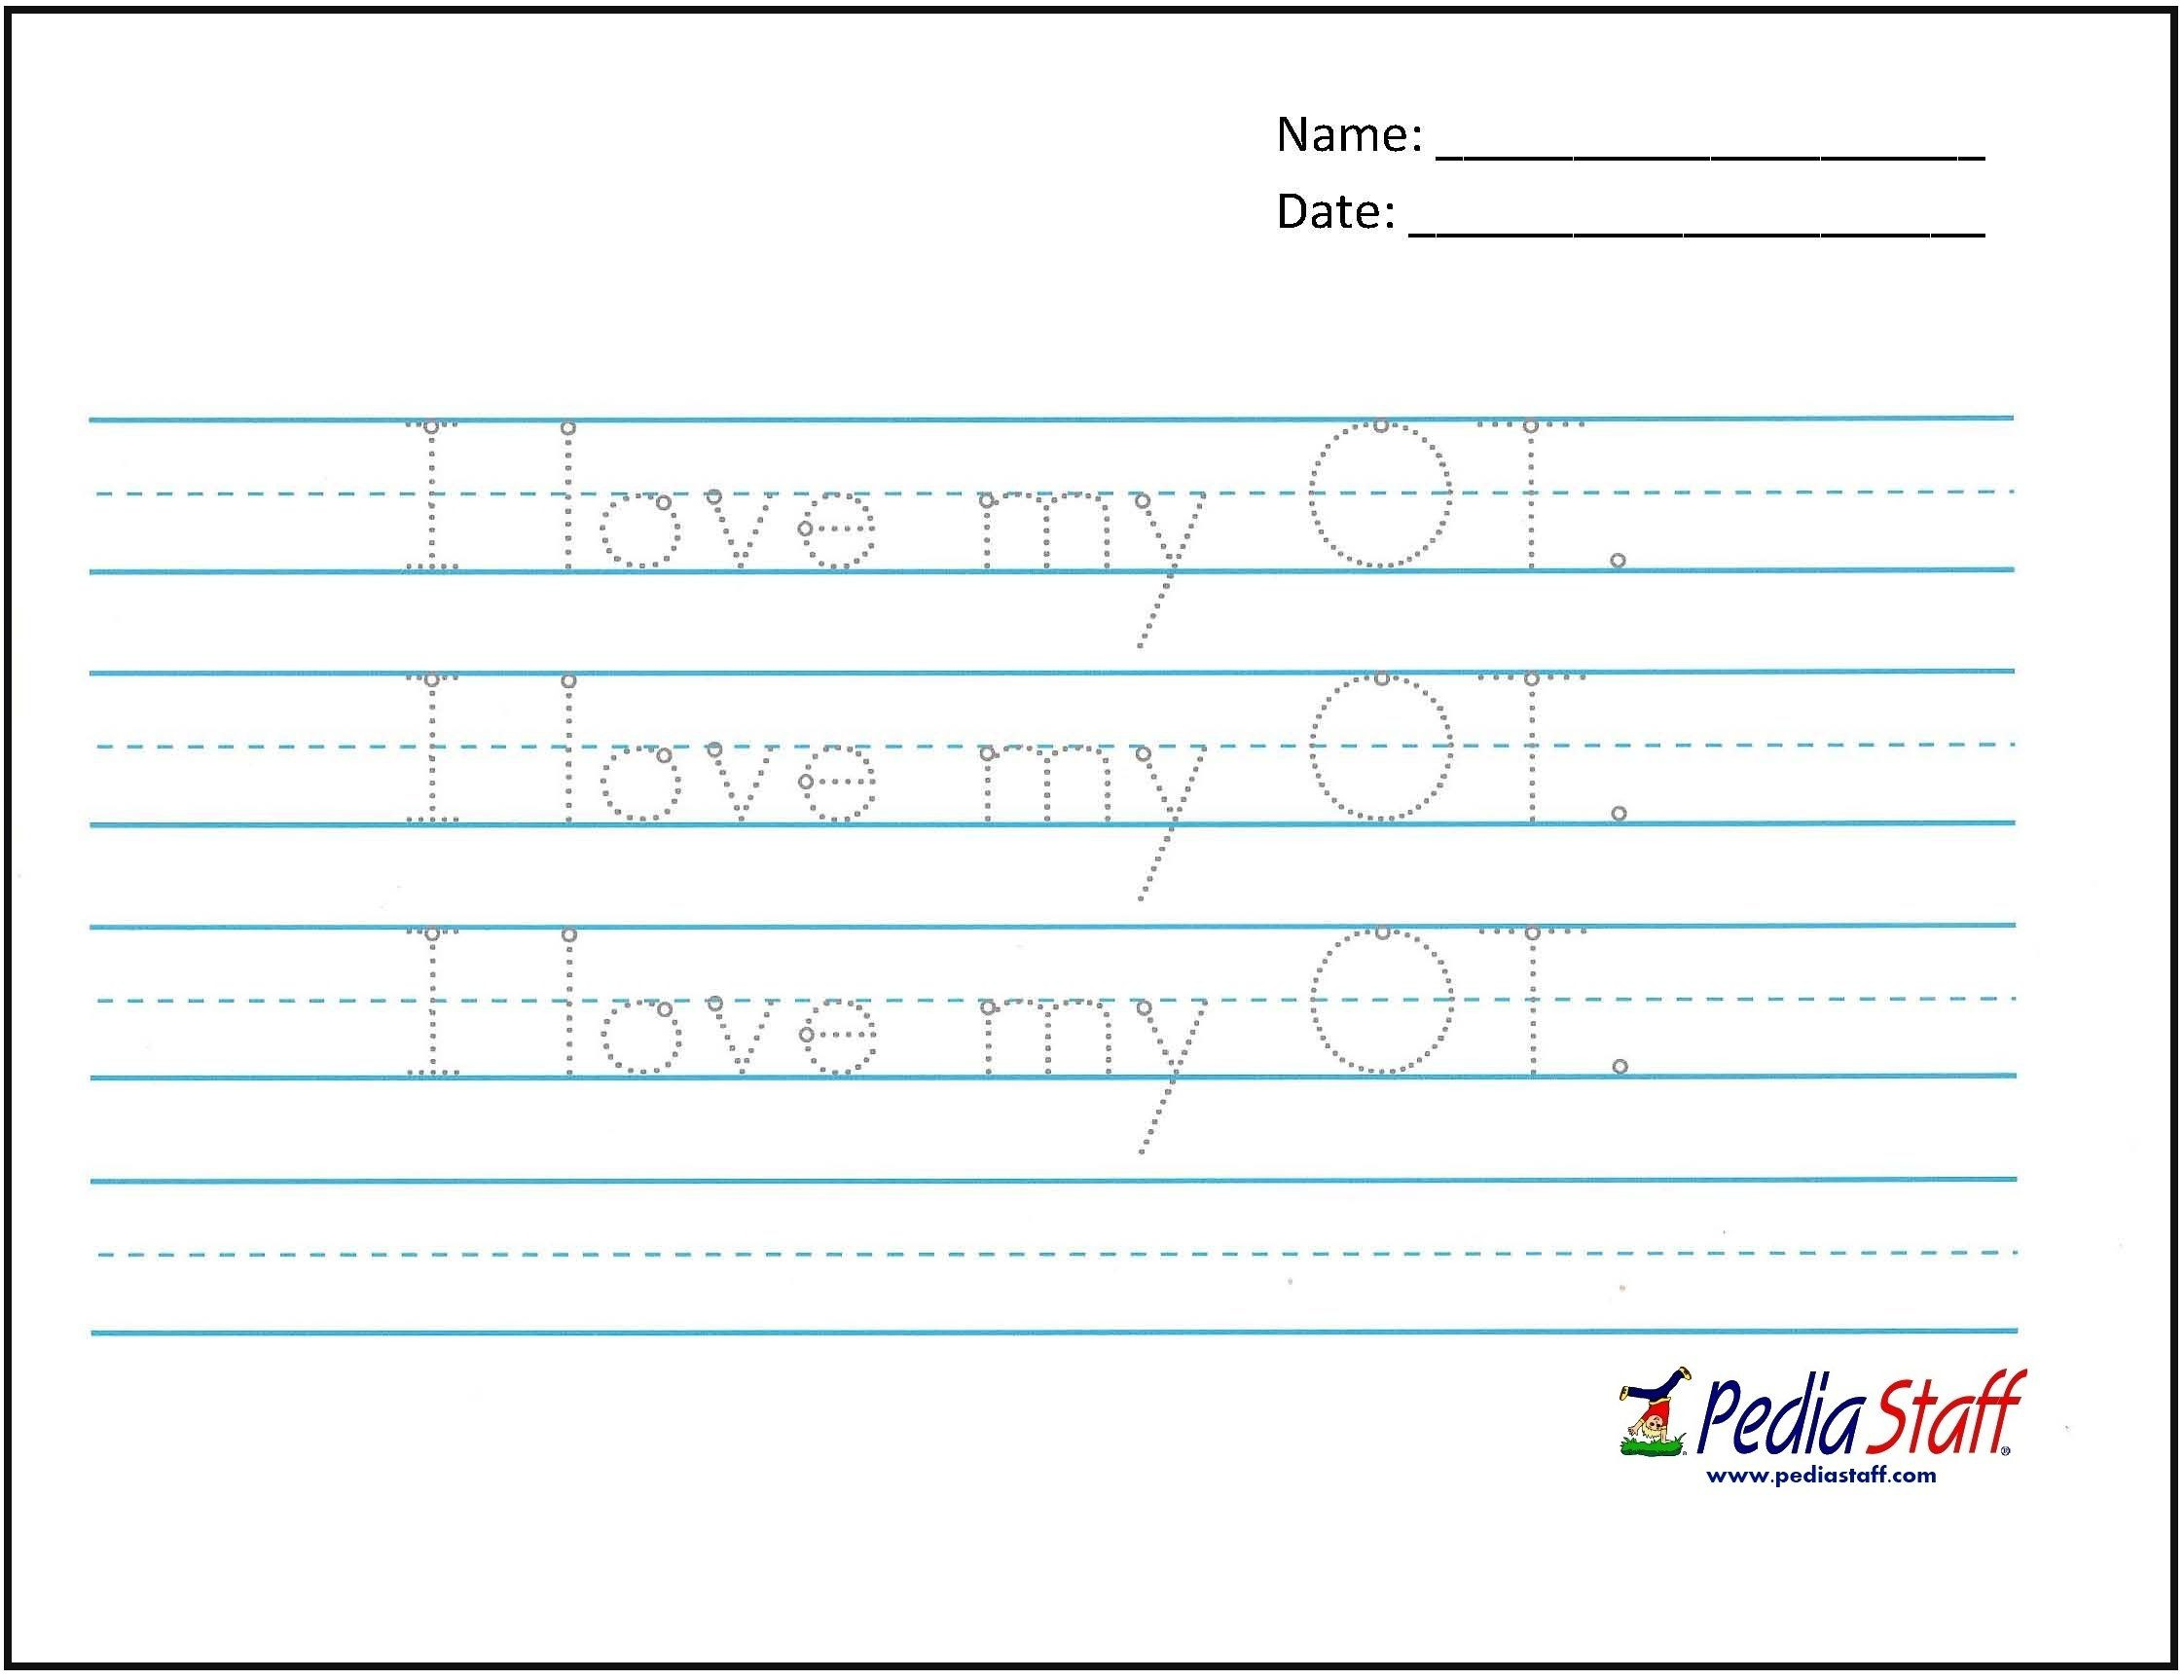 Occupational therapy Handwriting Worksheets Handwriting Practice for Occupational therapy Month